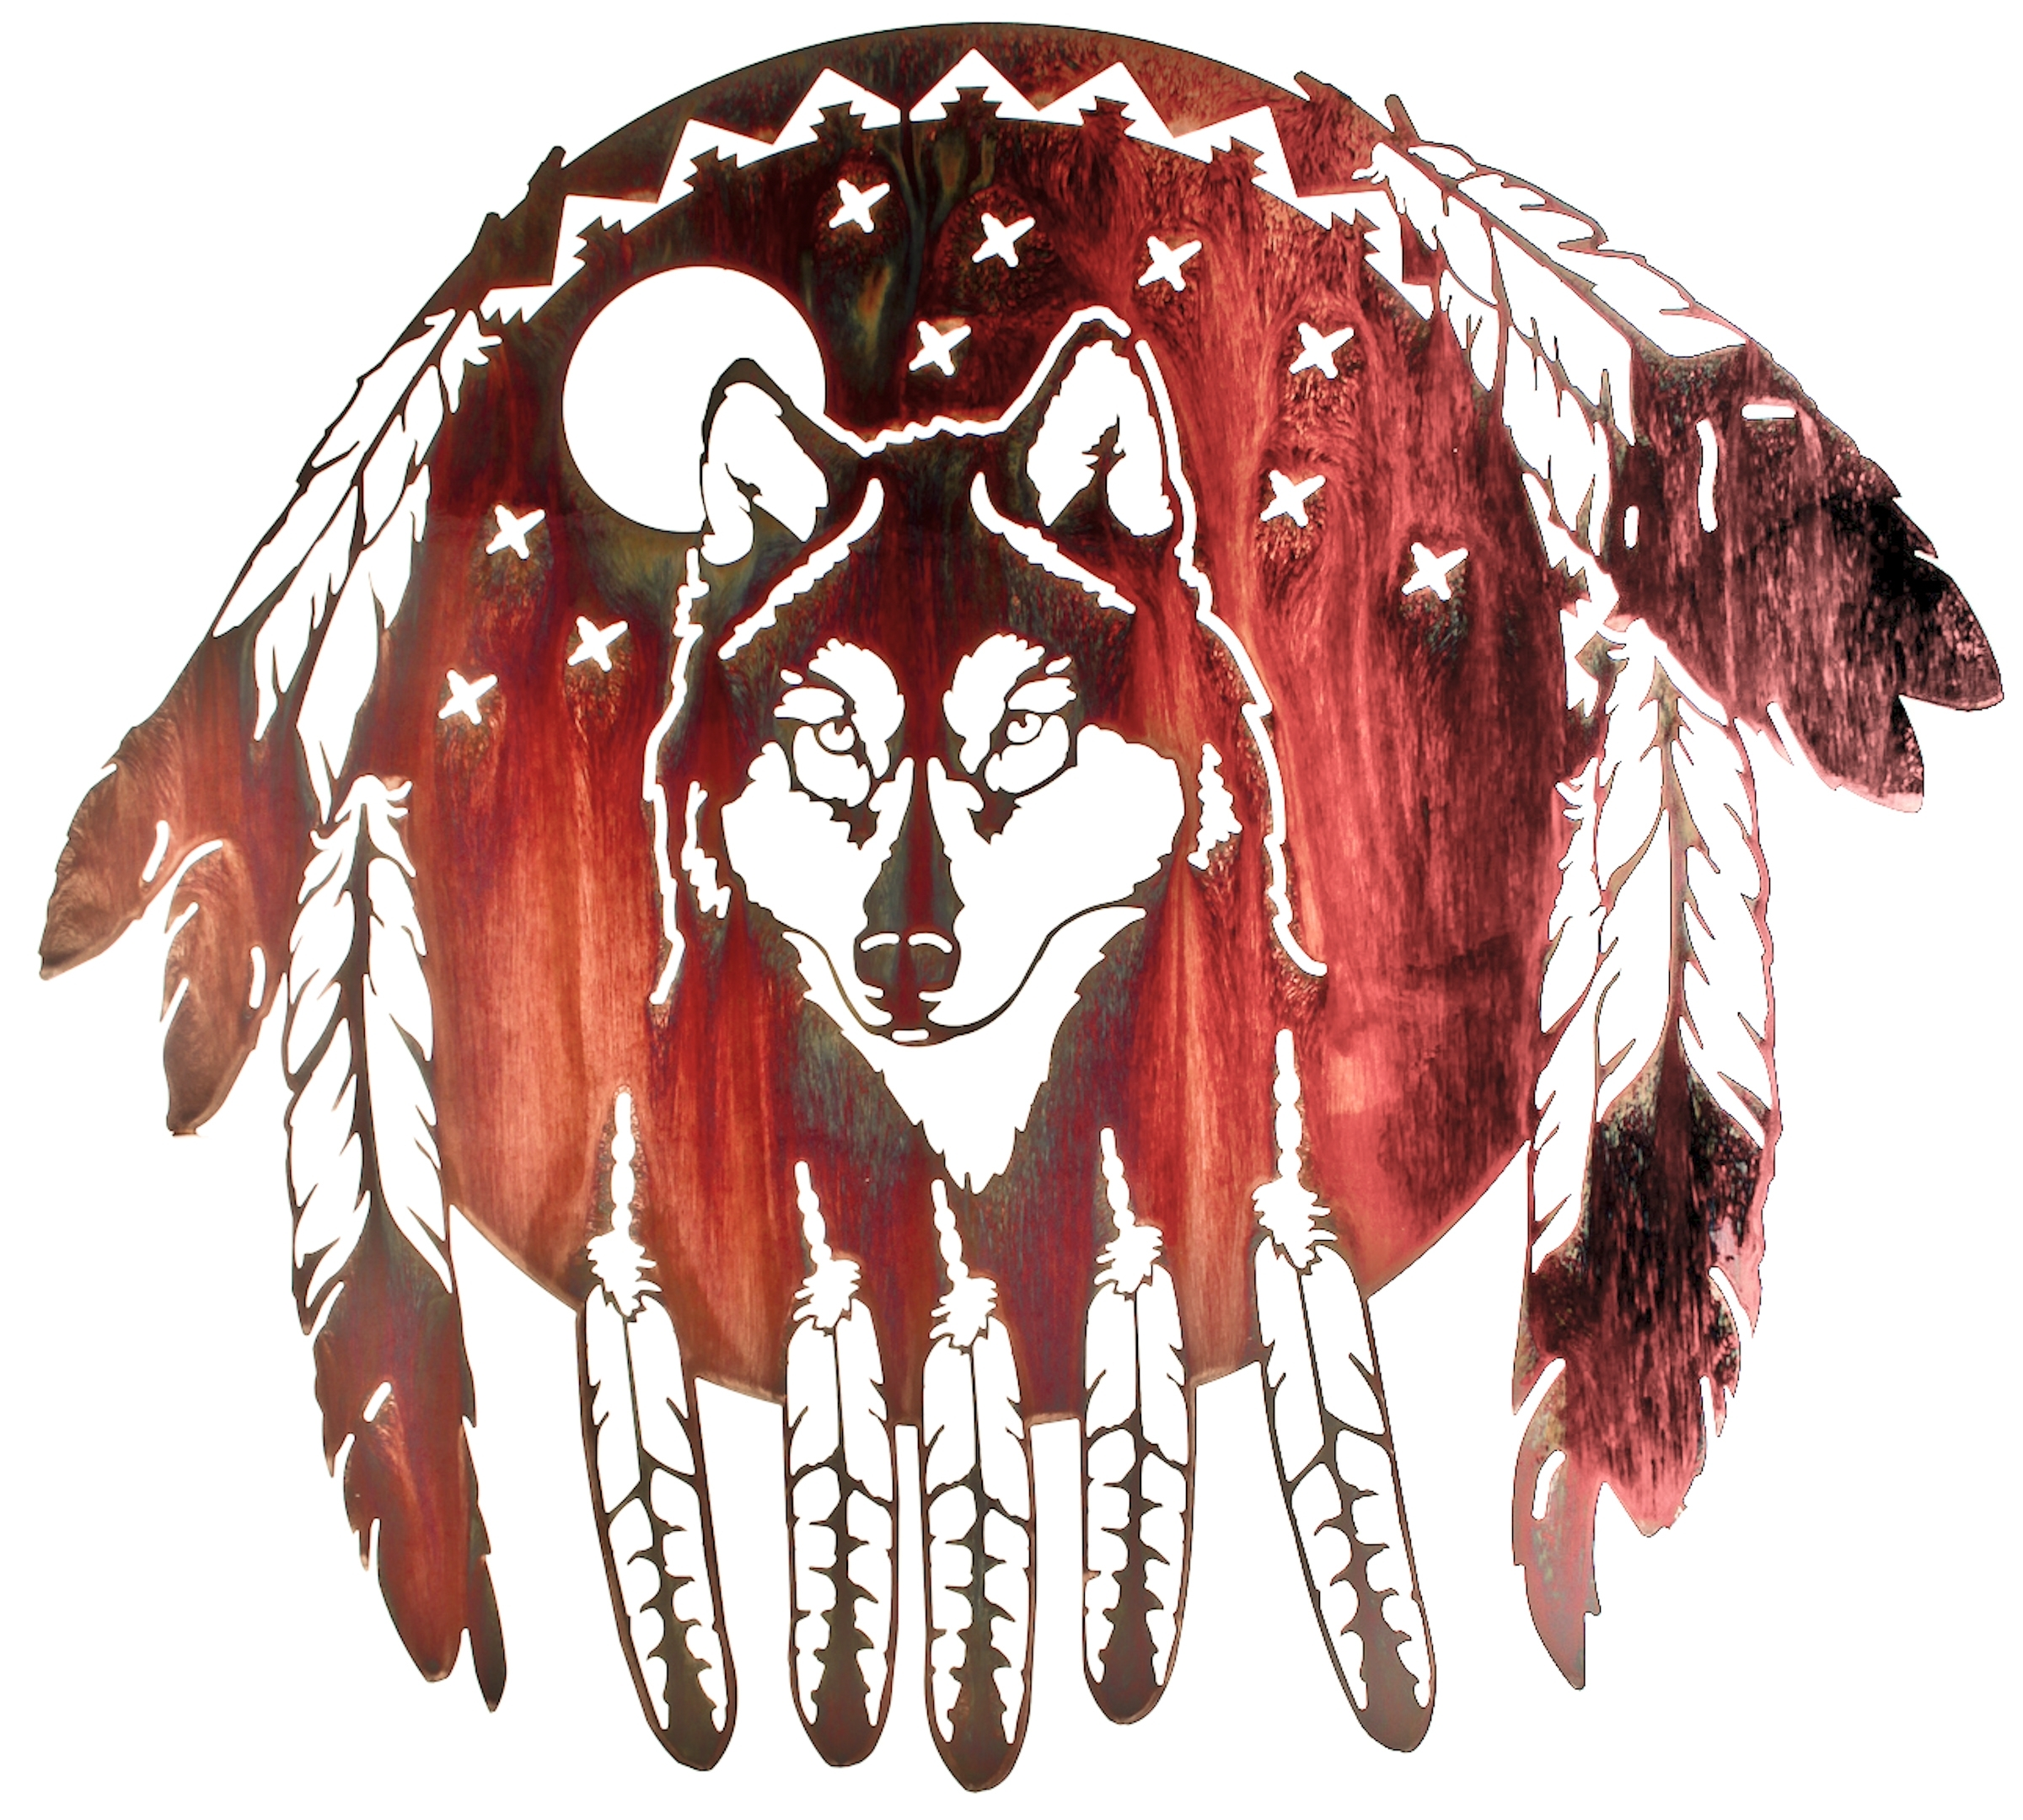 Most Recent Native American Indian Wall Art, Indian Wall Hangings Pertaining To Native American Wall Art (View 8 of 15)